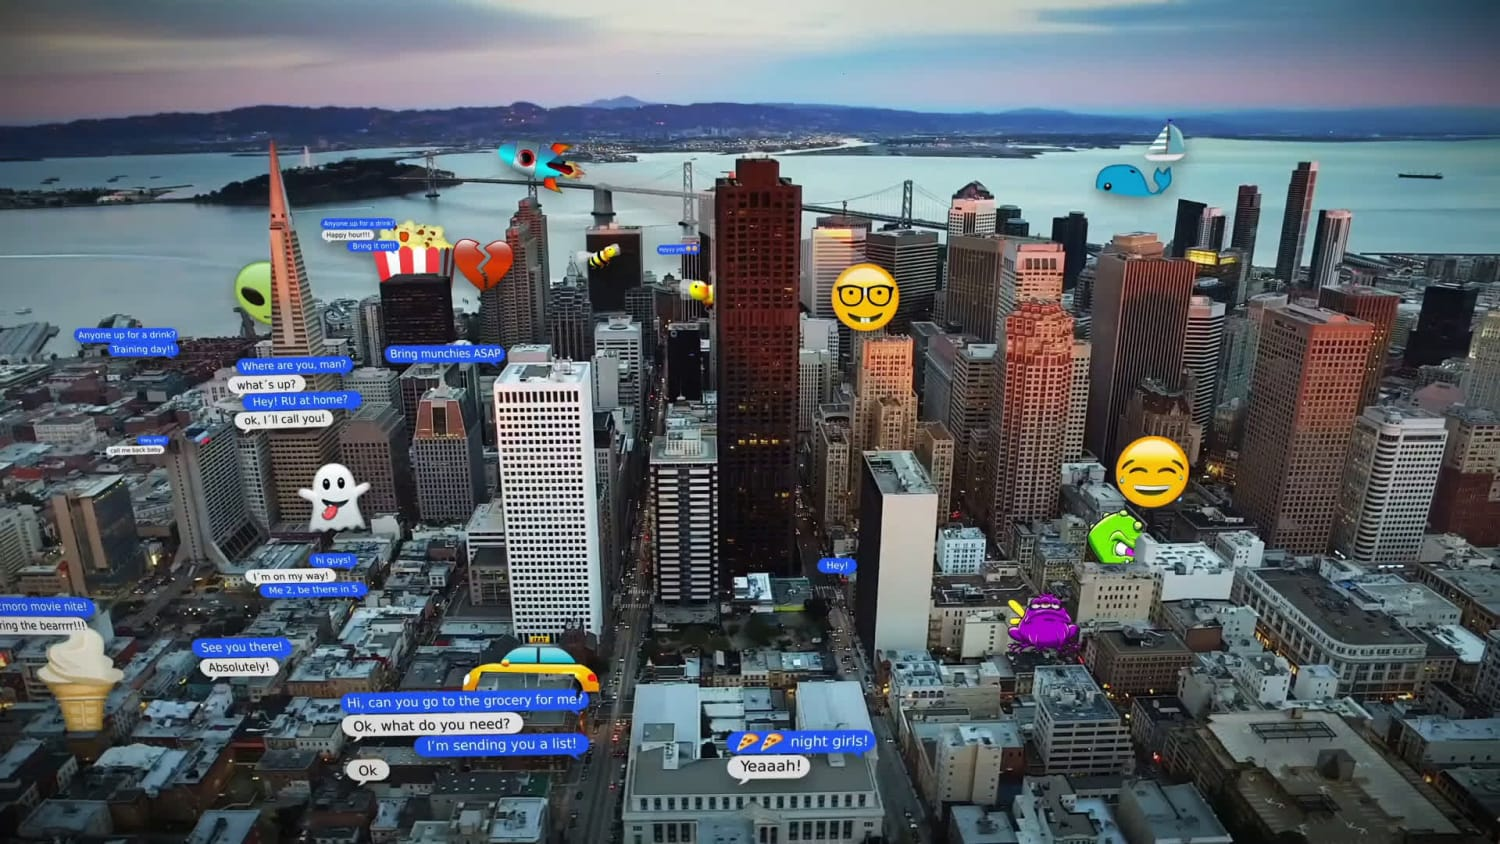 Scene of an animated city scape with various emojis and small bubble text strewn across.